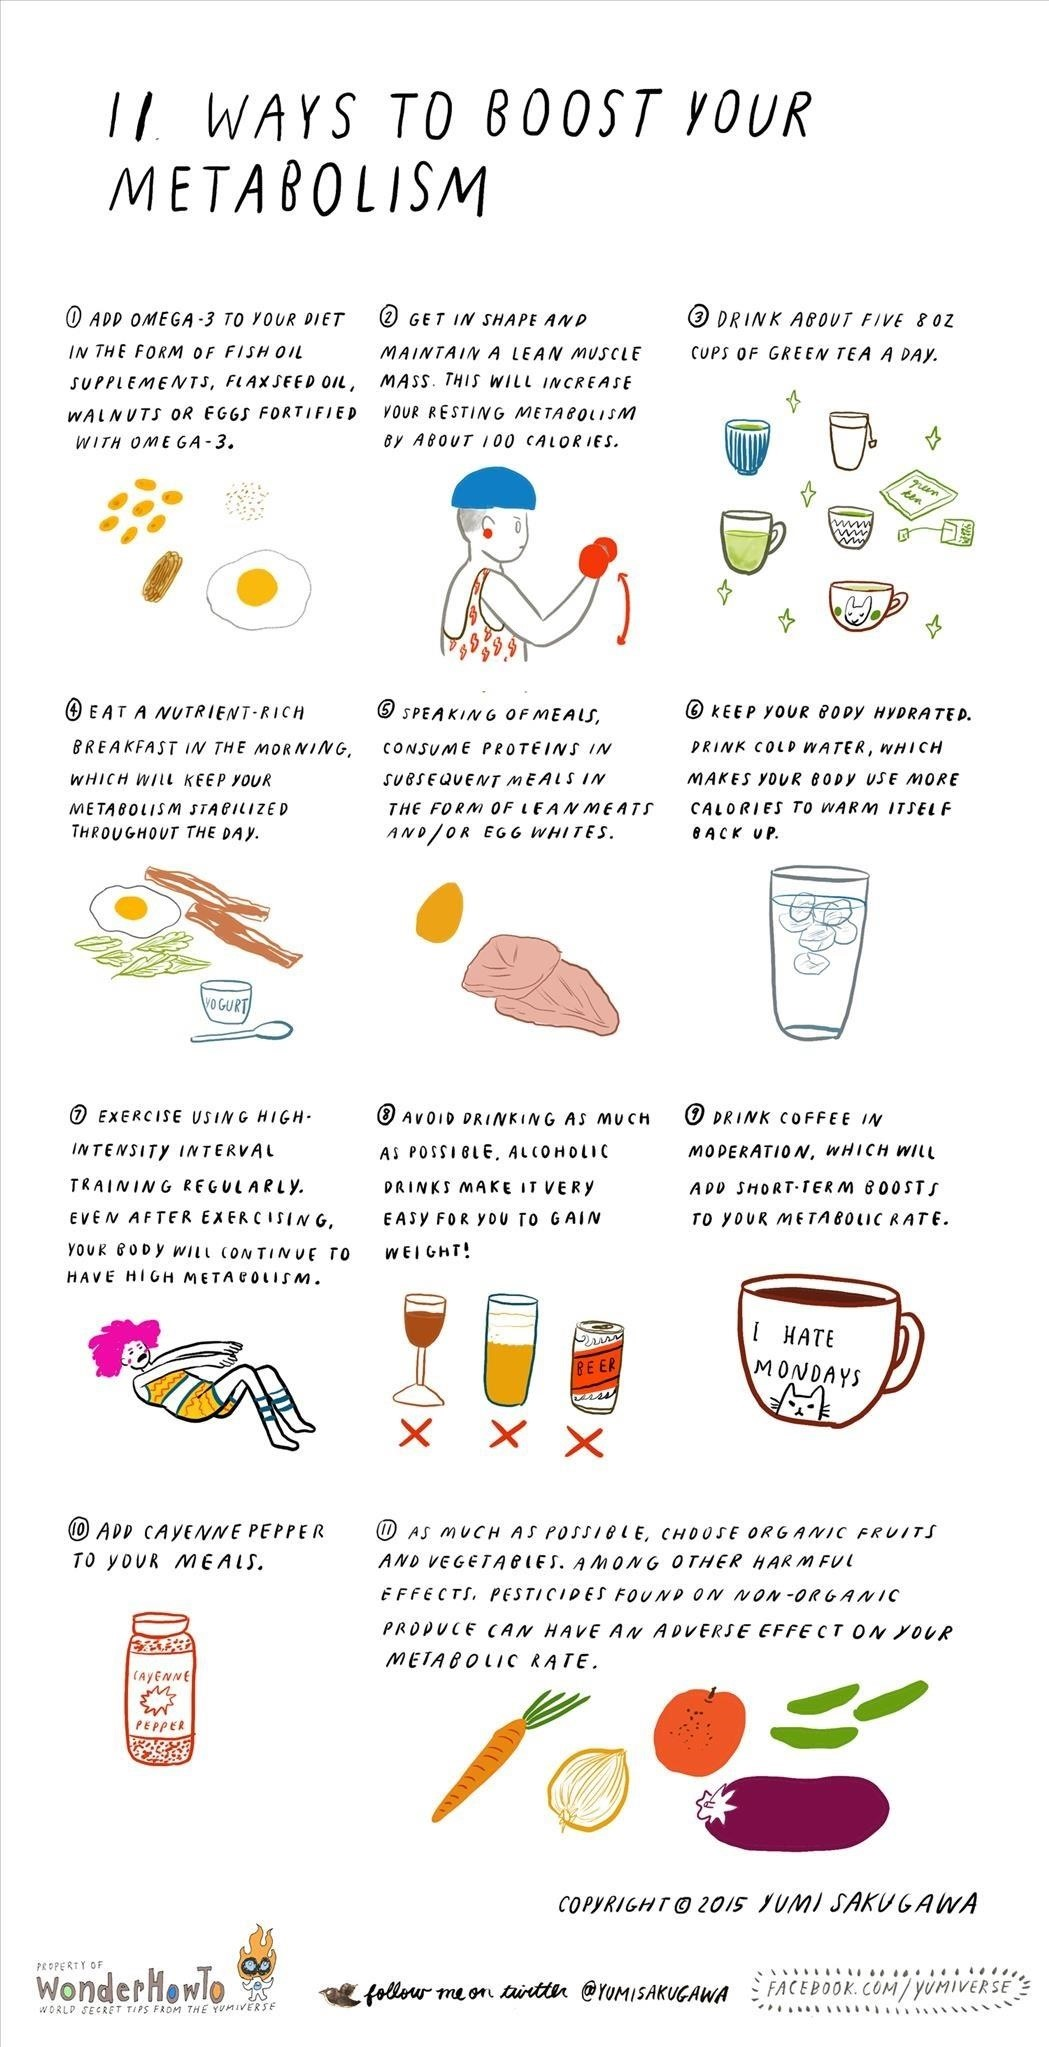 11 Ways to Boost Your Metabolism